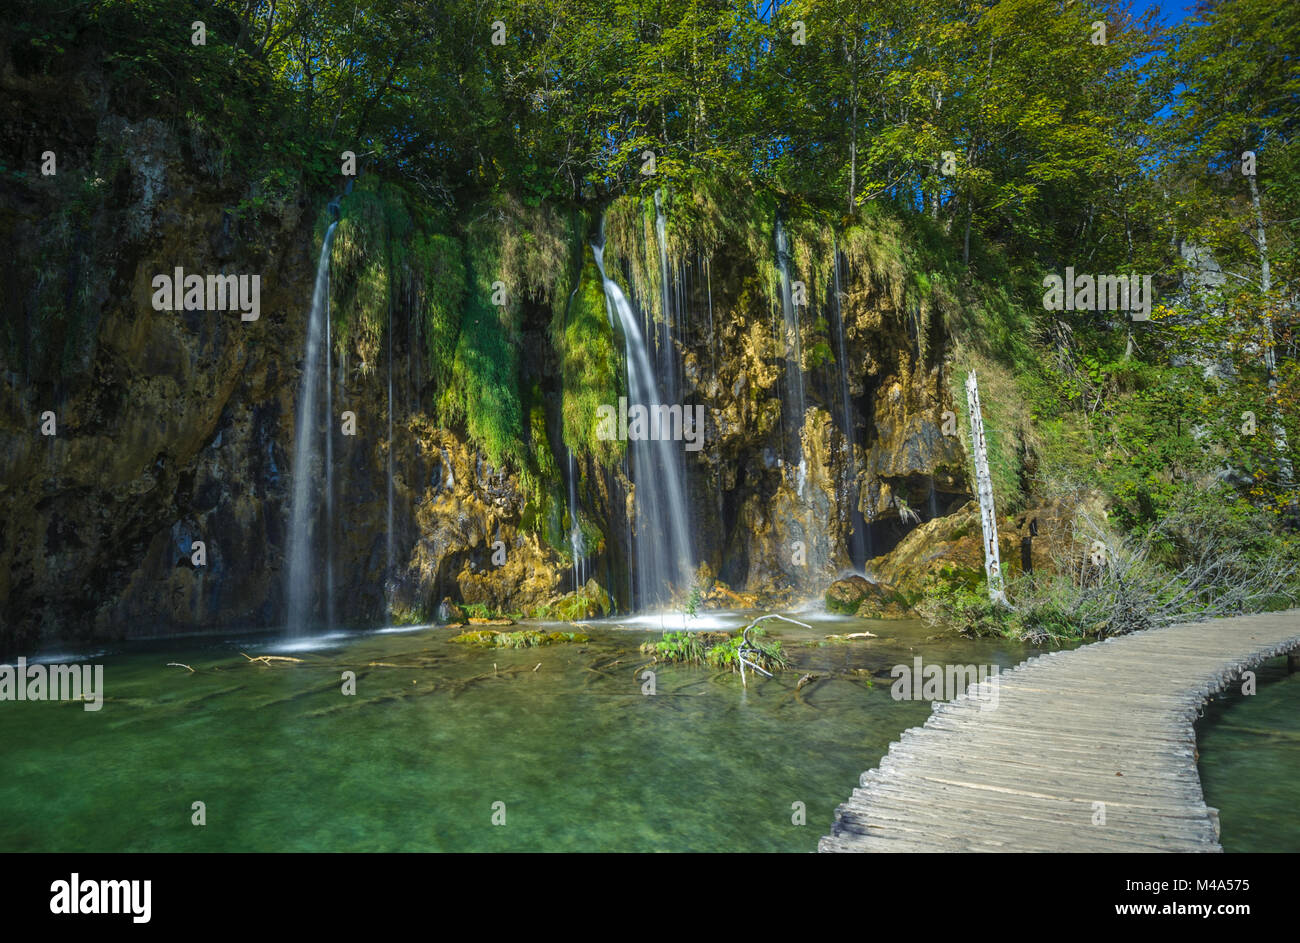 Plitvice Lakes National Park, Croatia. UNESCO world heritage site. - Stock Image